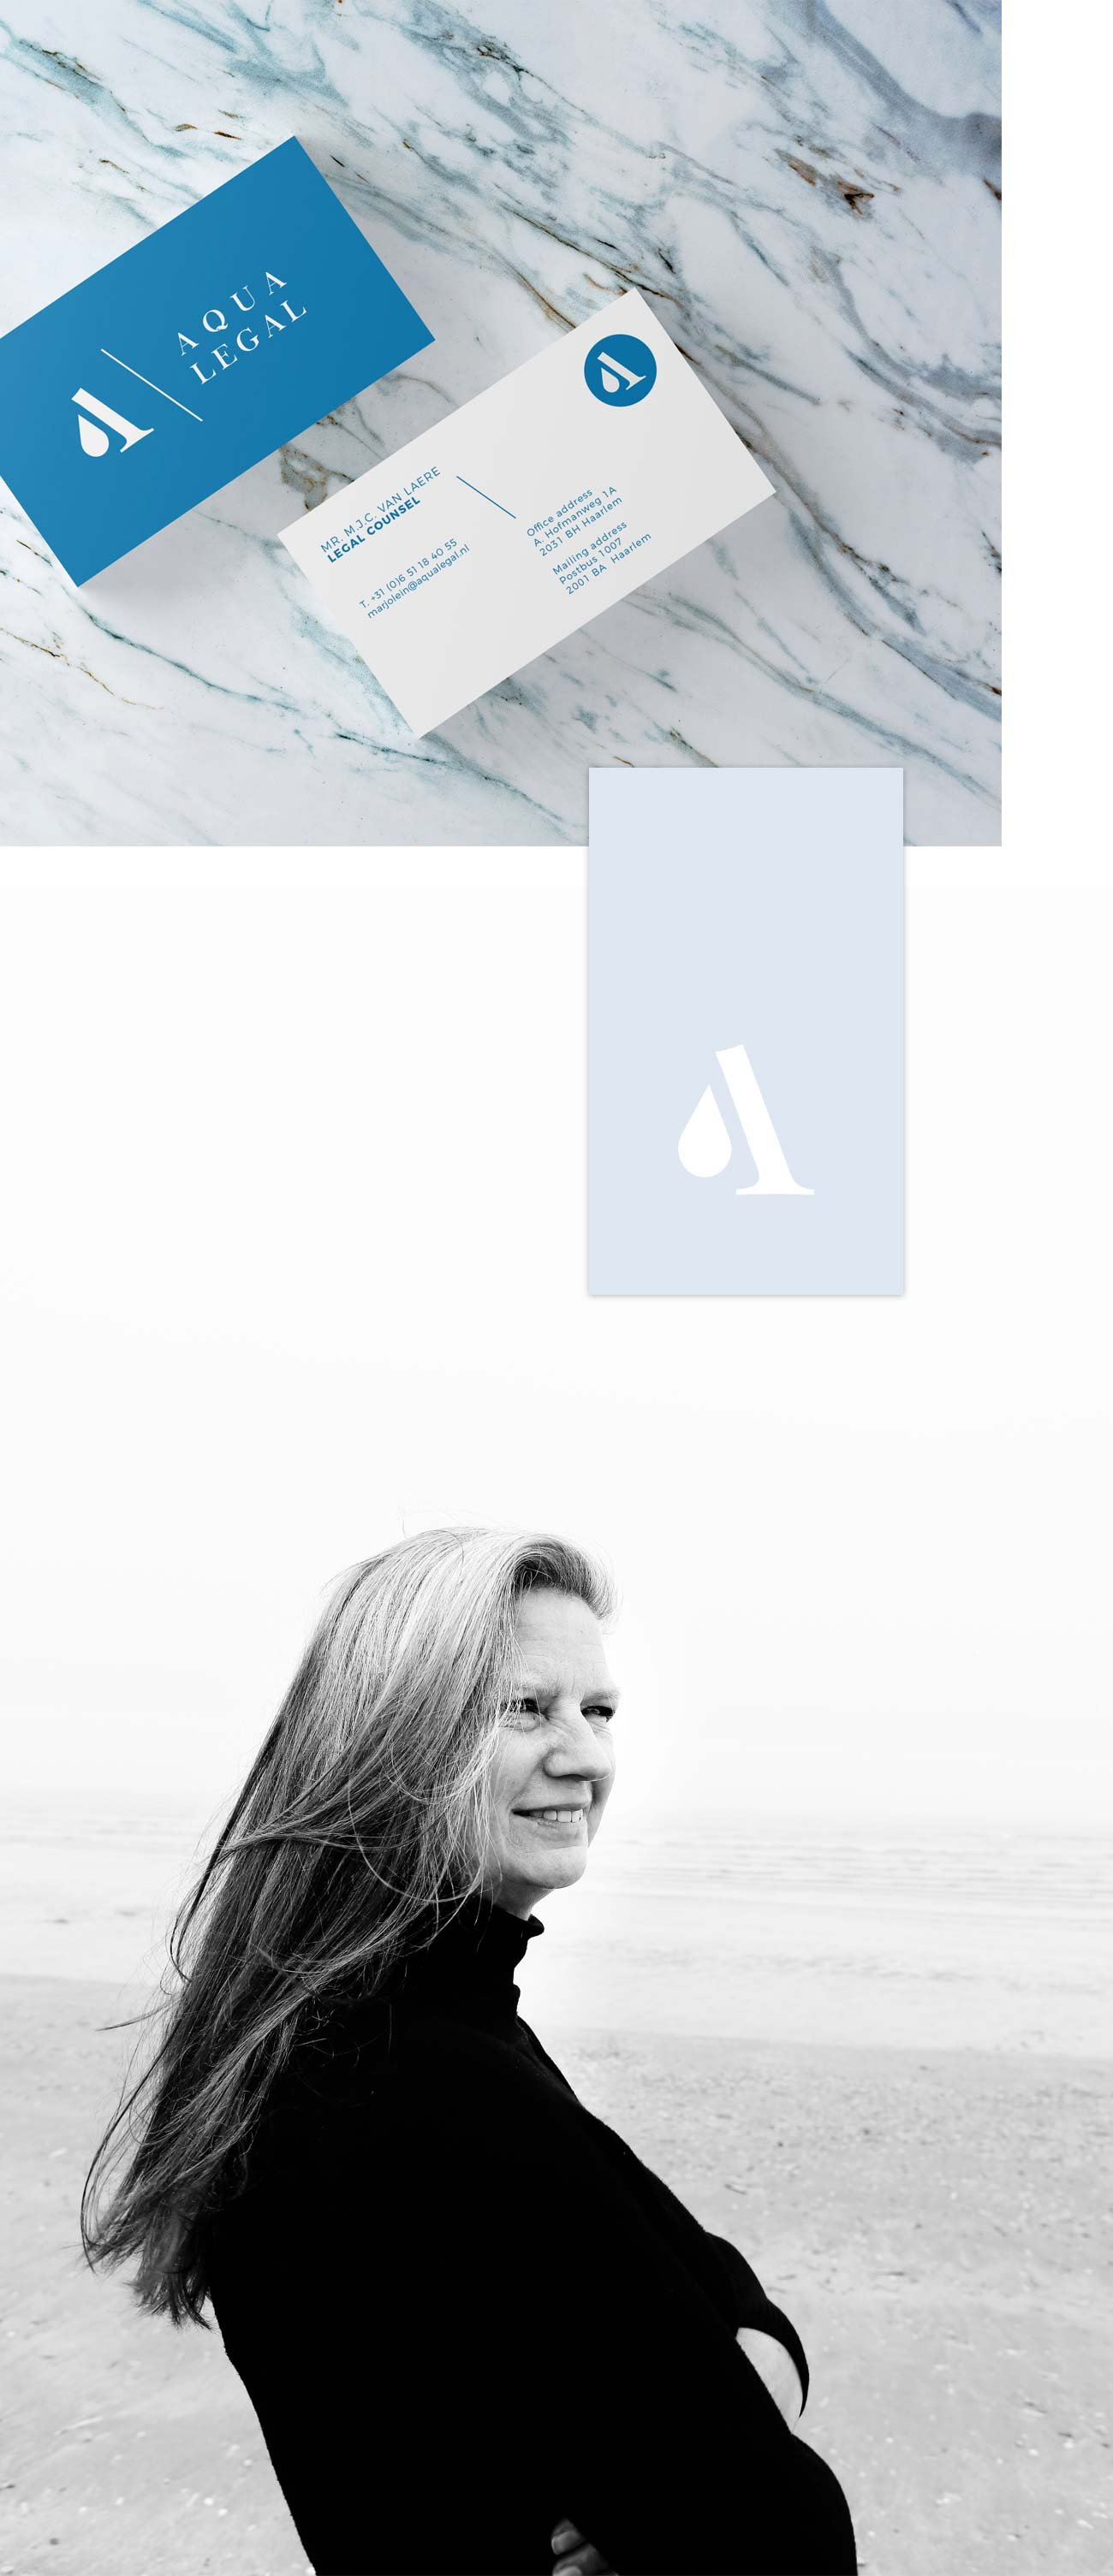 Branding Identity logo design business cards letterhead and portrait photography for Aqua Legal Marjolein van Laere by Poppyonto